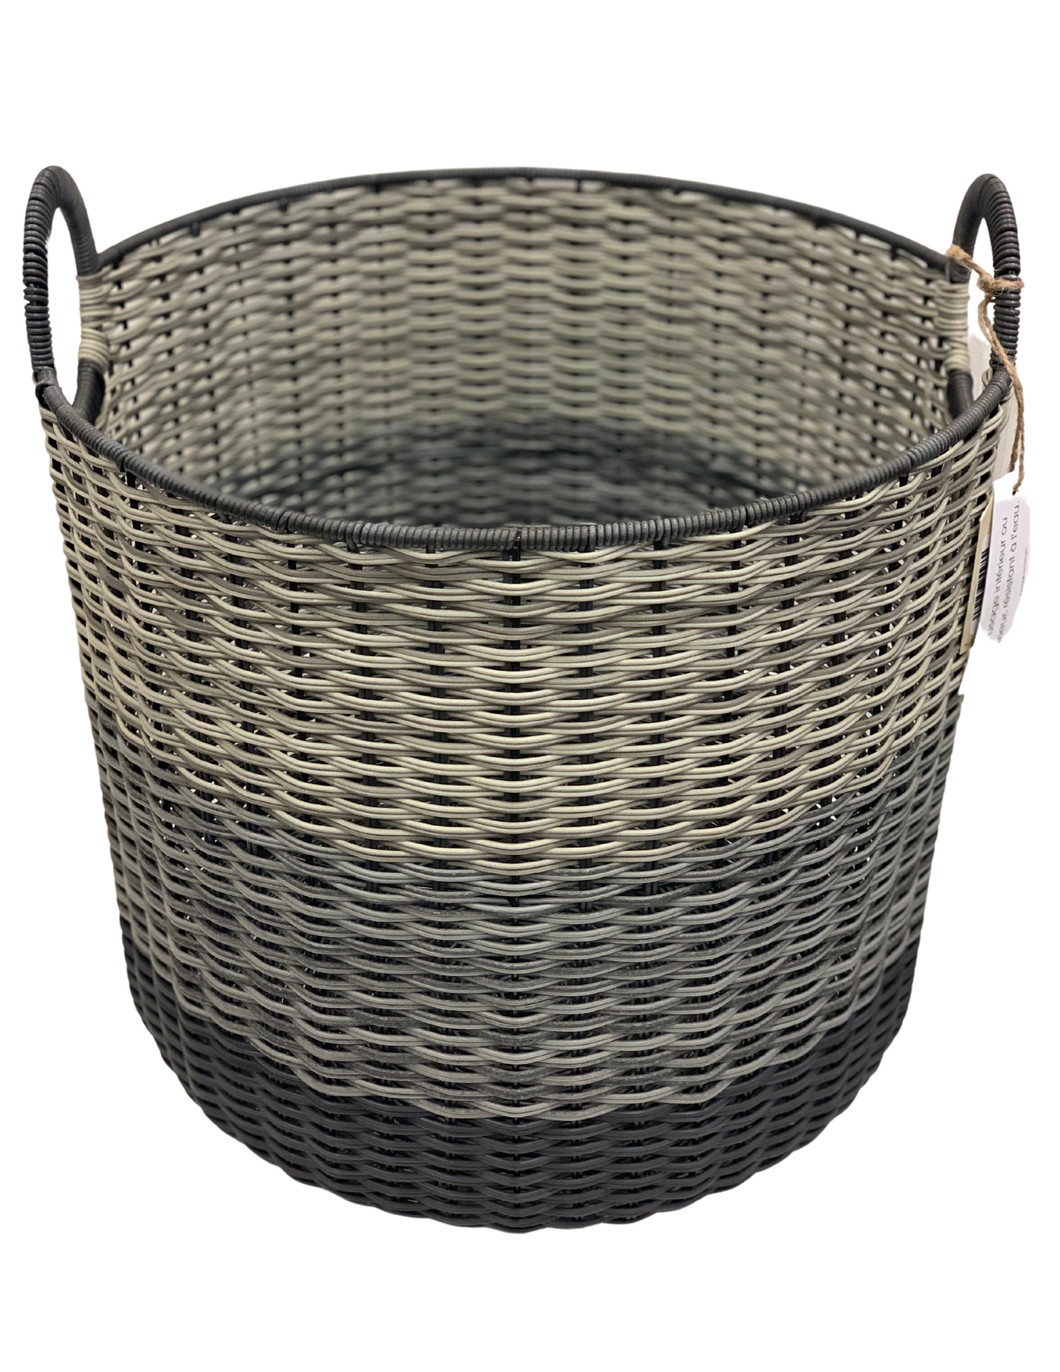 INDOOR/OUTDOOR BASKET 17